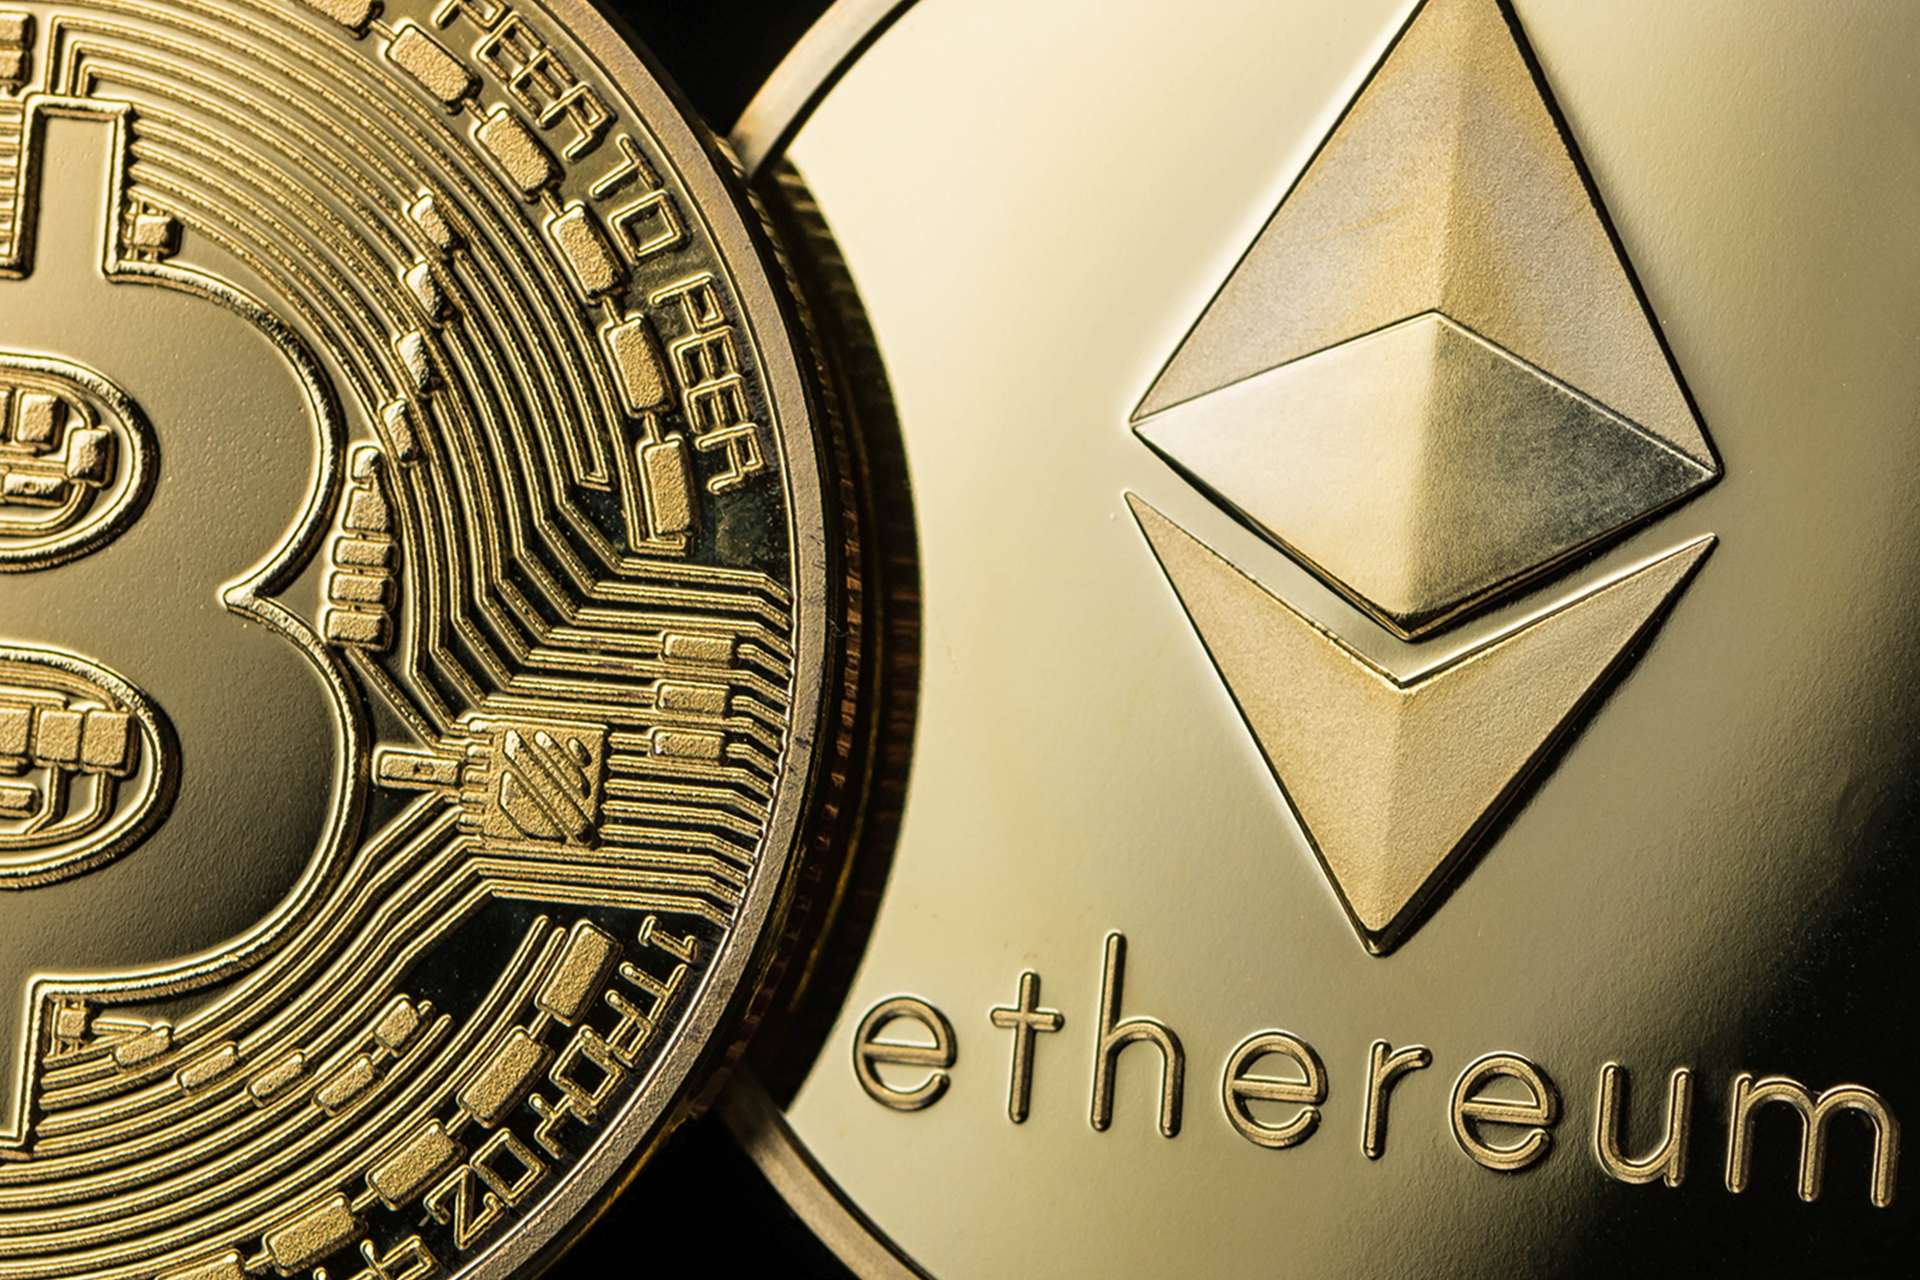 What is a Better Investment, Bitcoin or Ethereum?